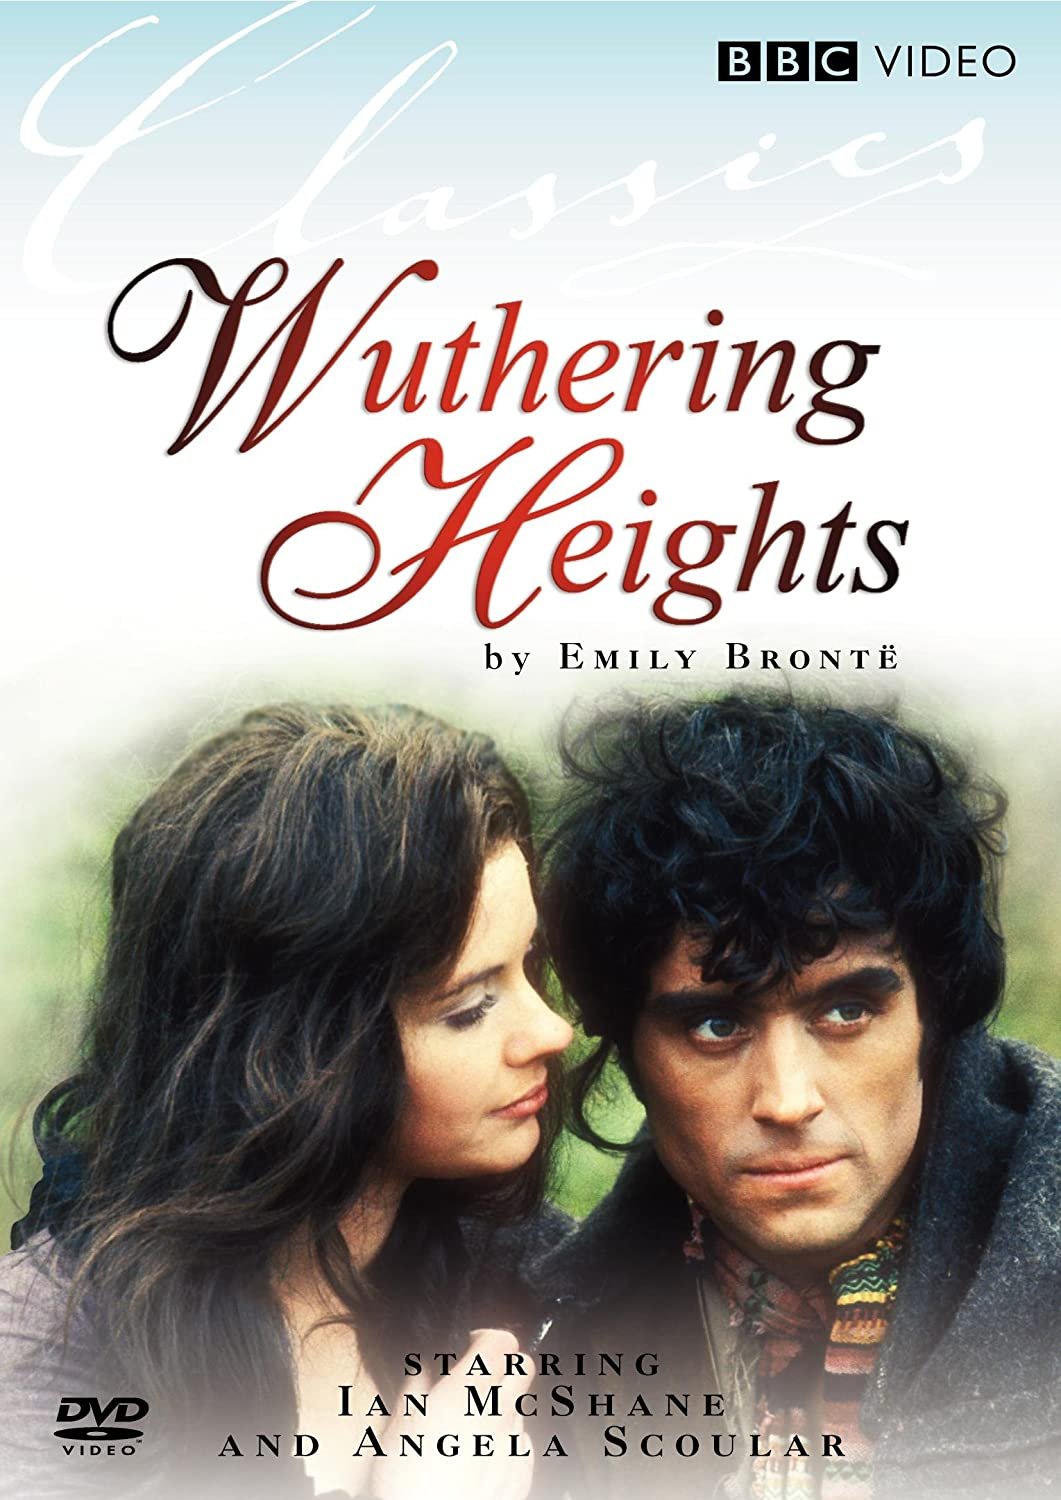 wuthering heights edgar more information rank one info wuthering heights 1967 wuthering heights 2011 edgar